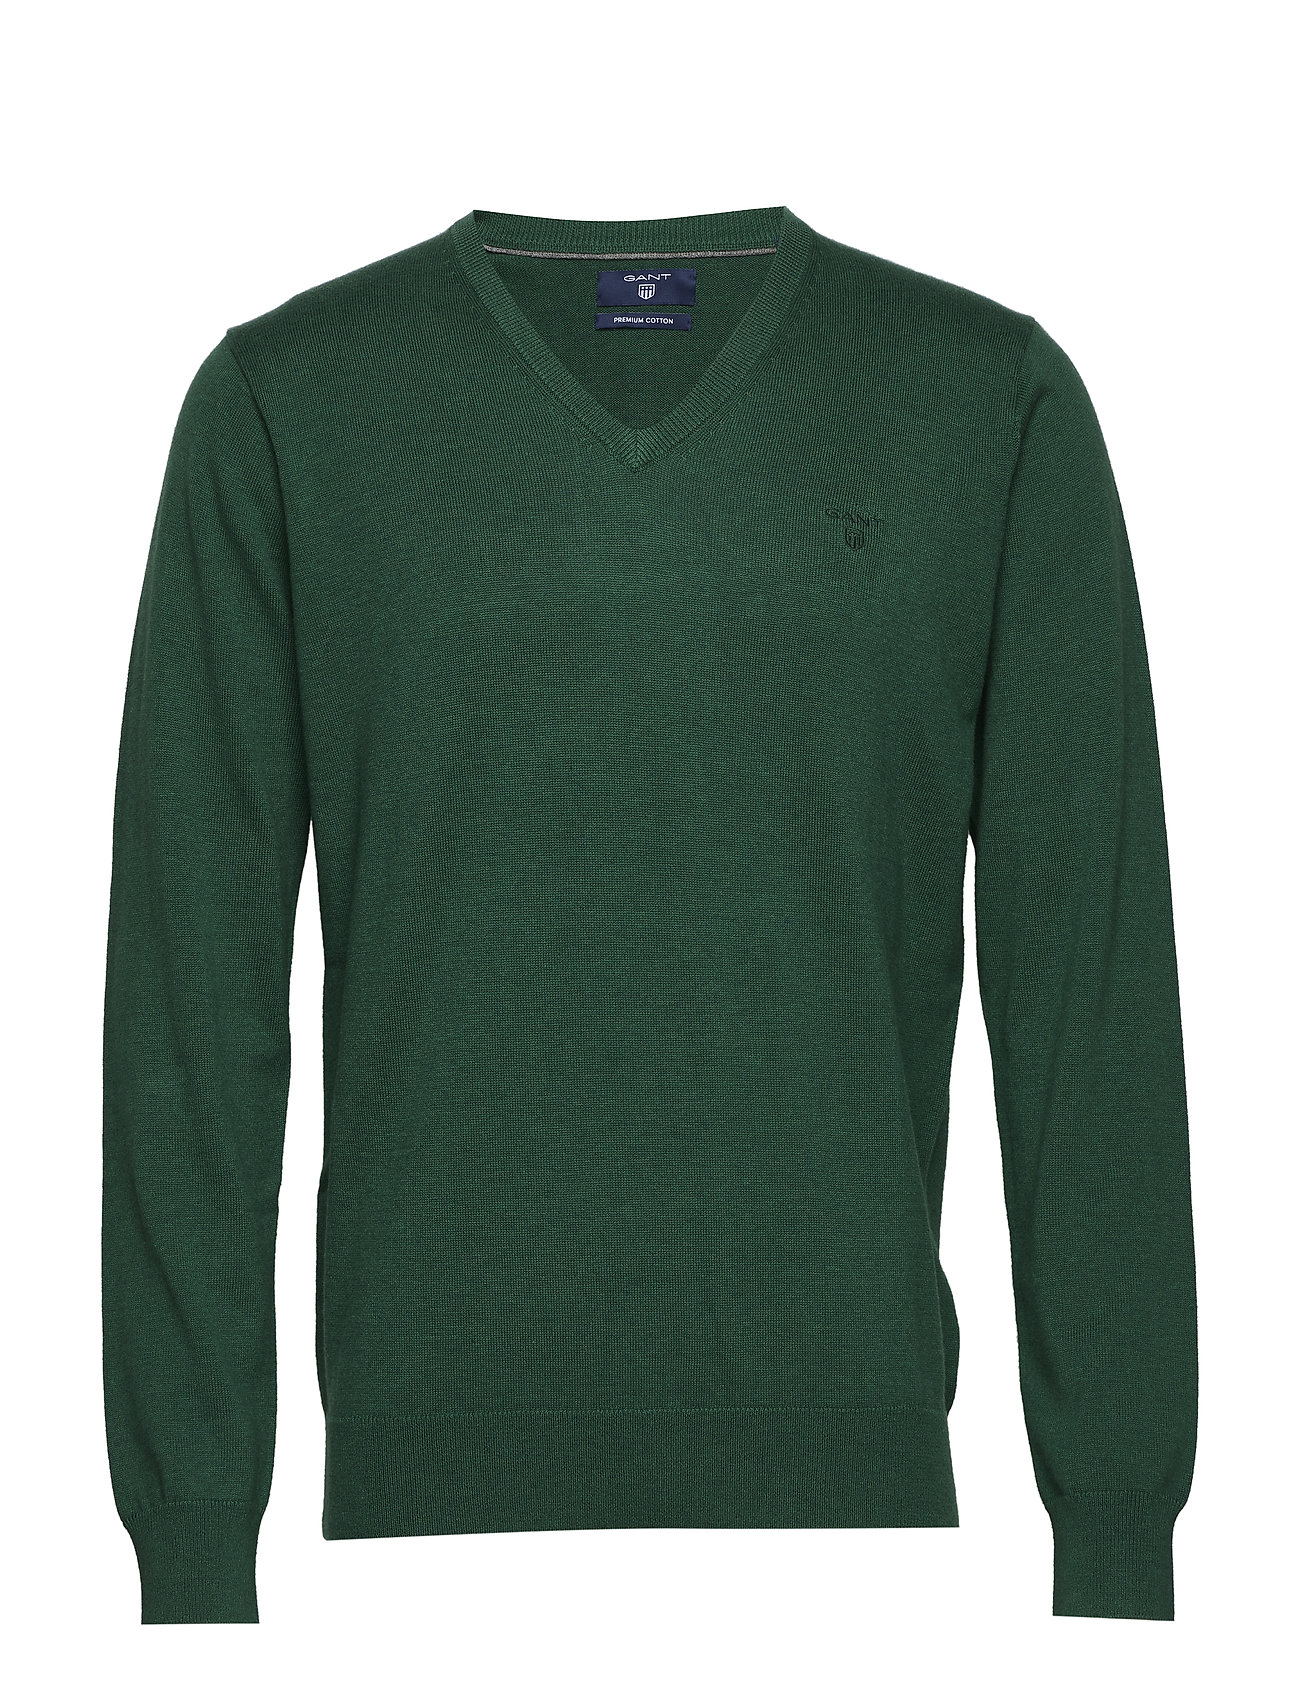 GANT LT. WEIGHT COTTON V-NECK